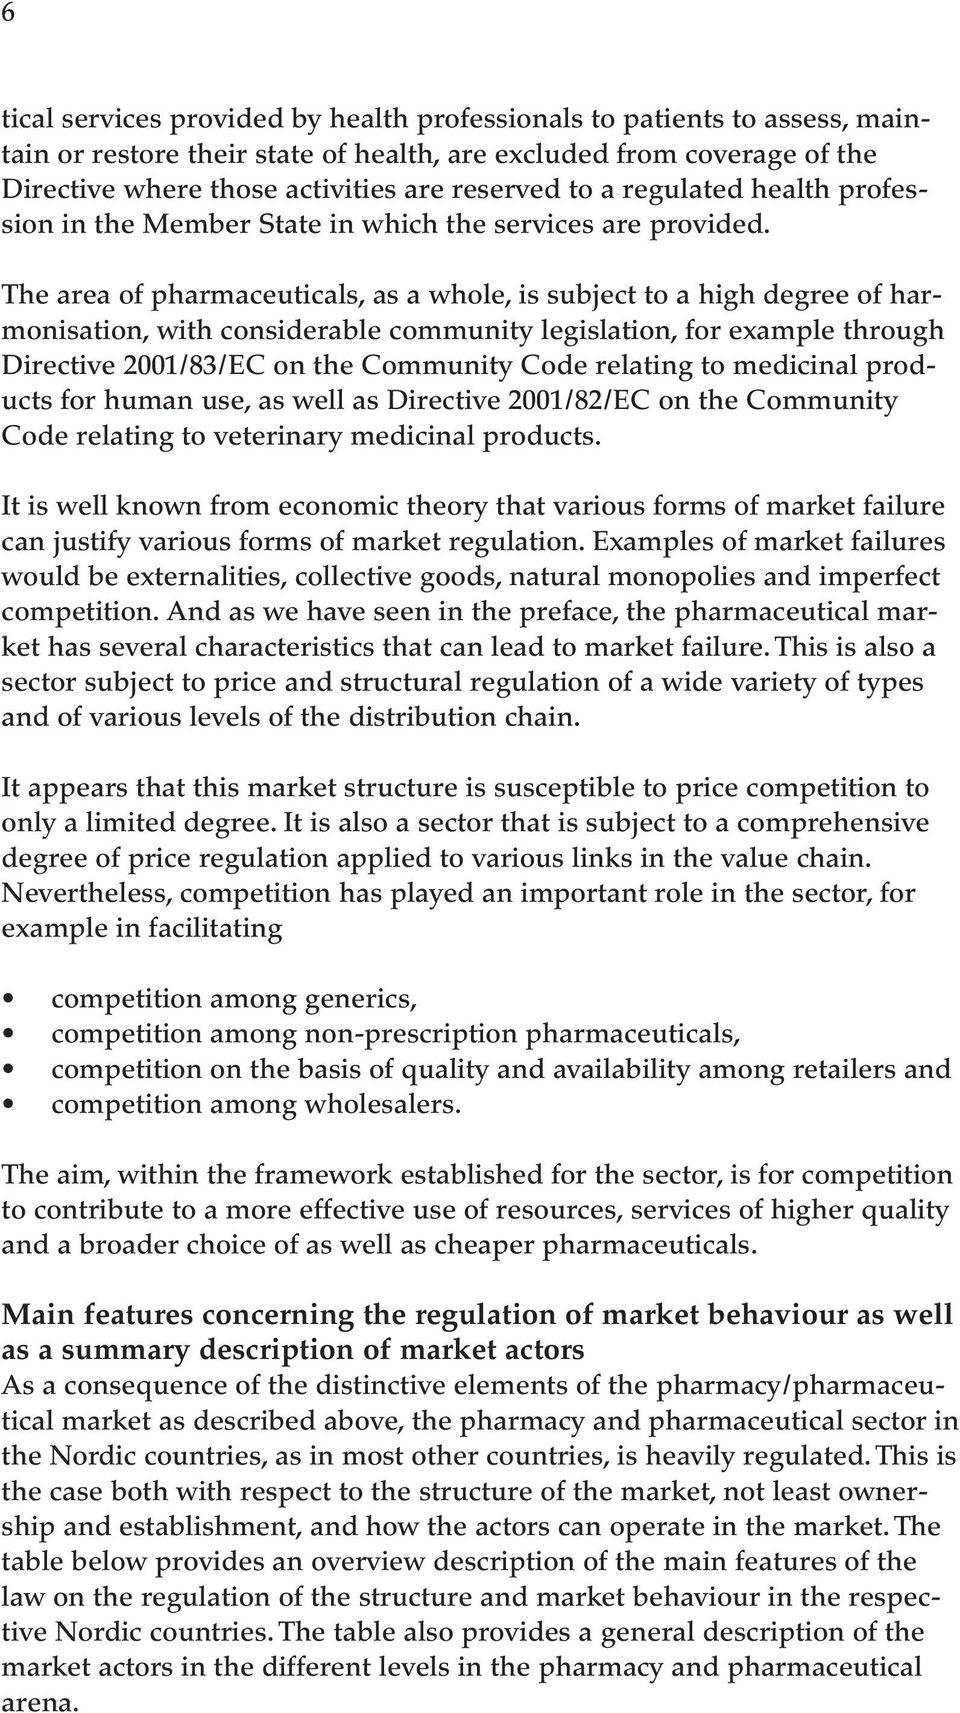 The area of pharmaceuticals, as a whole, is subject to a high degree of harmonisation, with considerable community legislation, for example through Directive 2001/83/EC on the Community Code relating